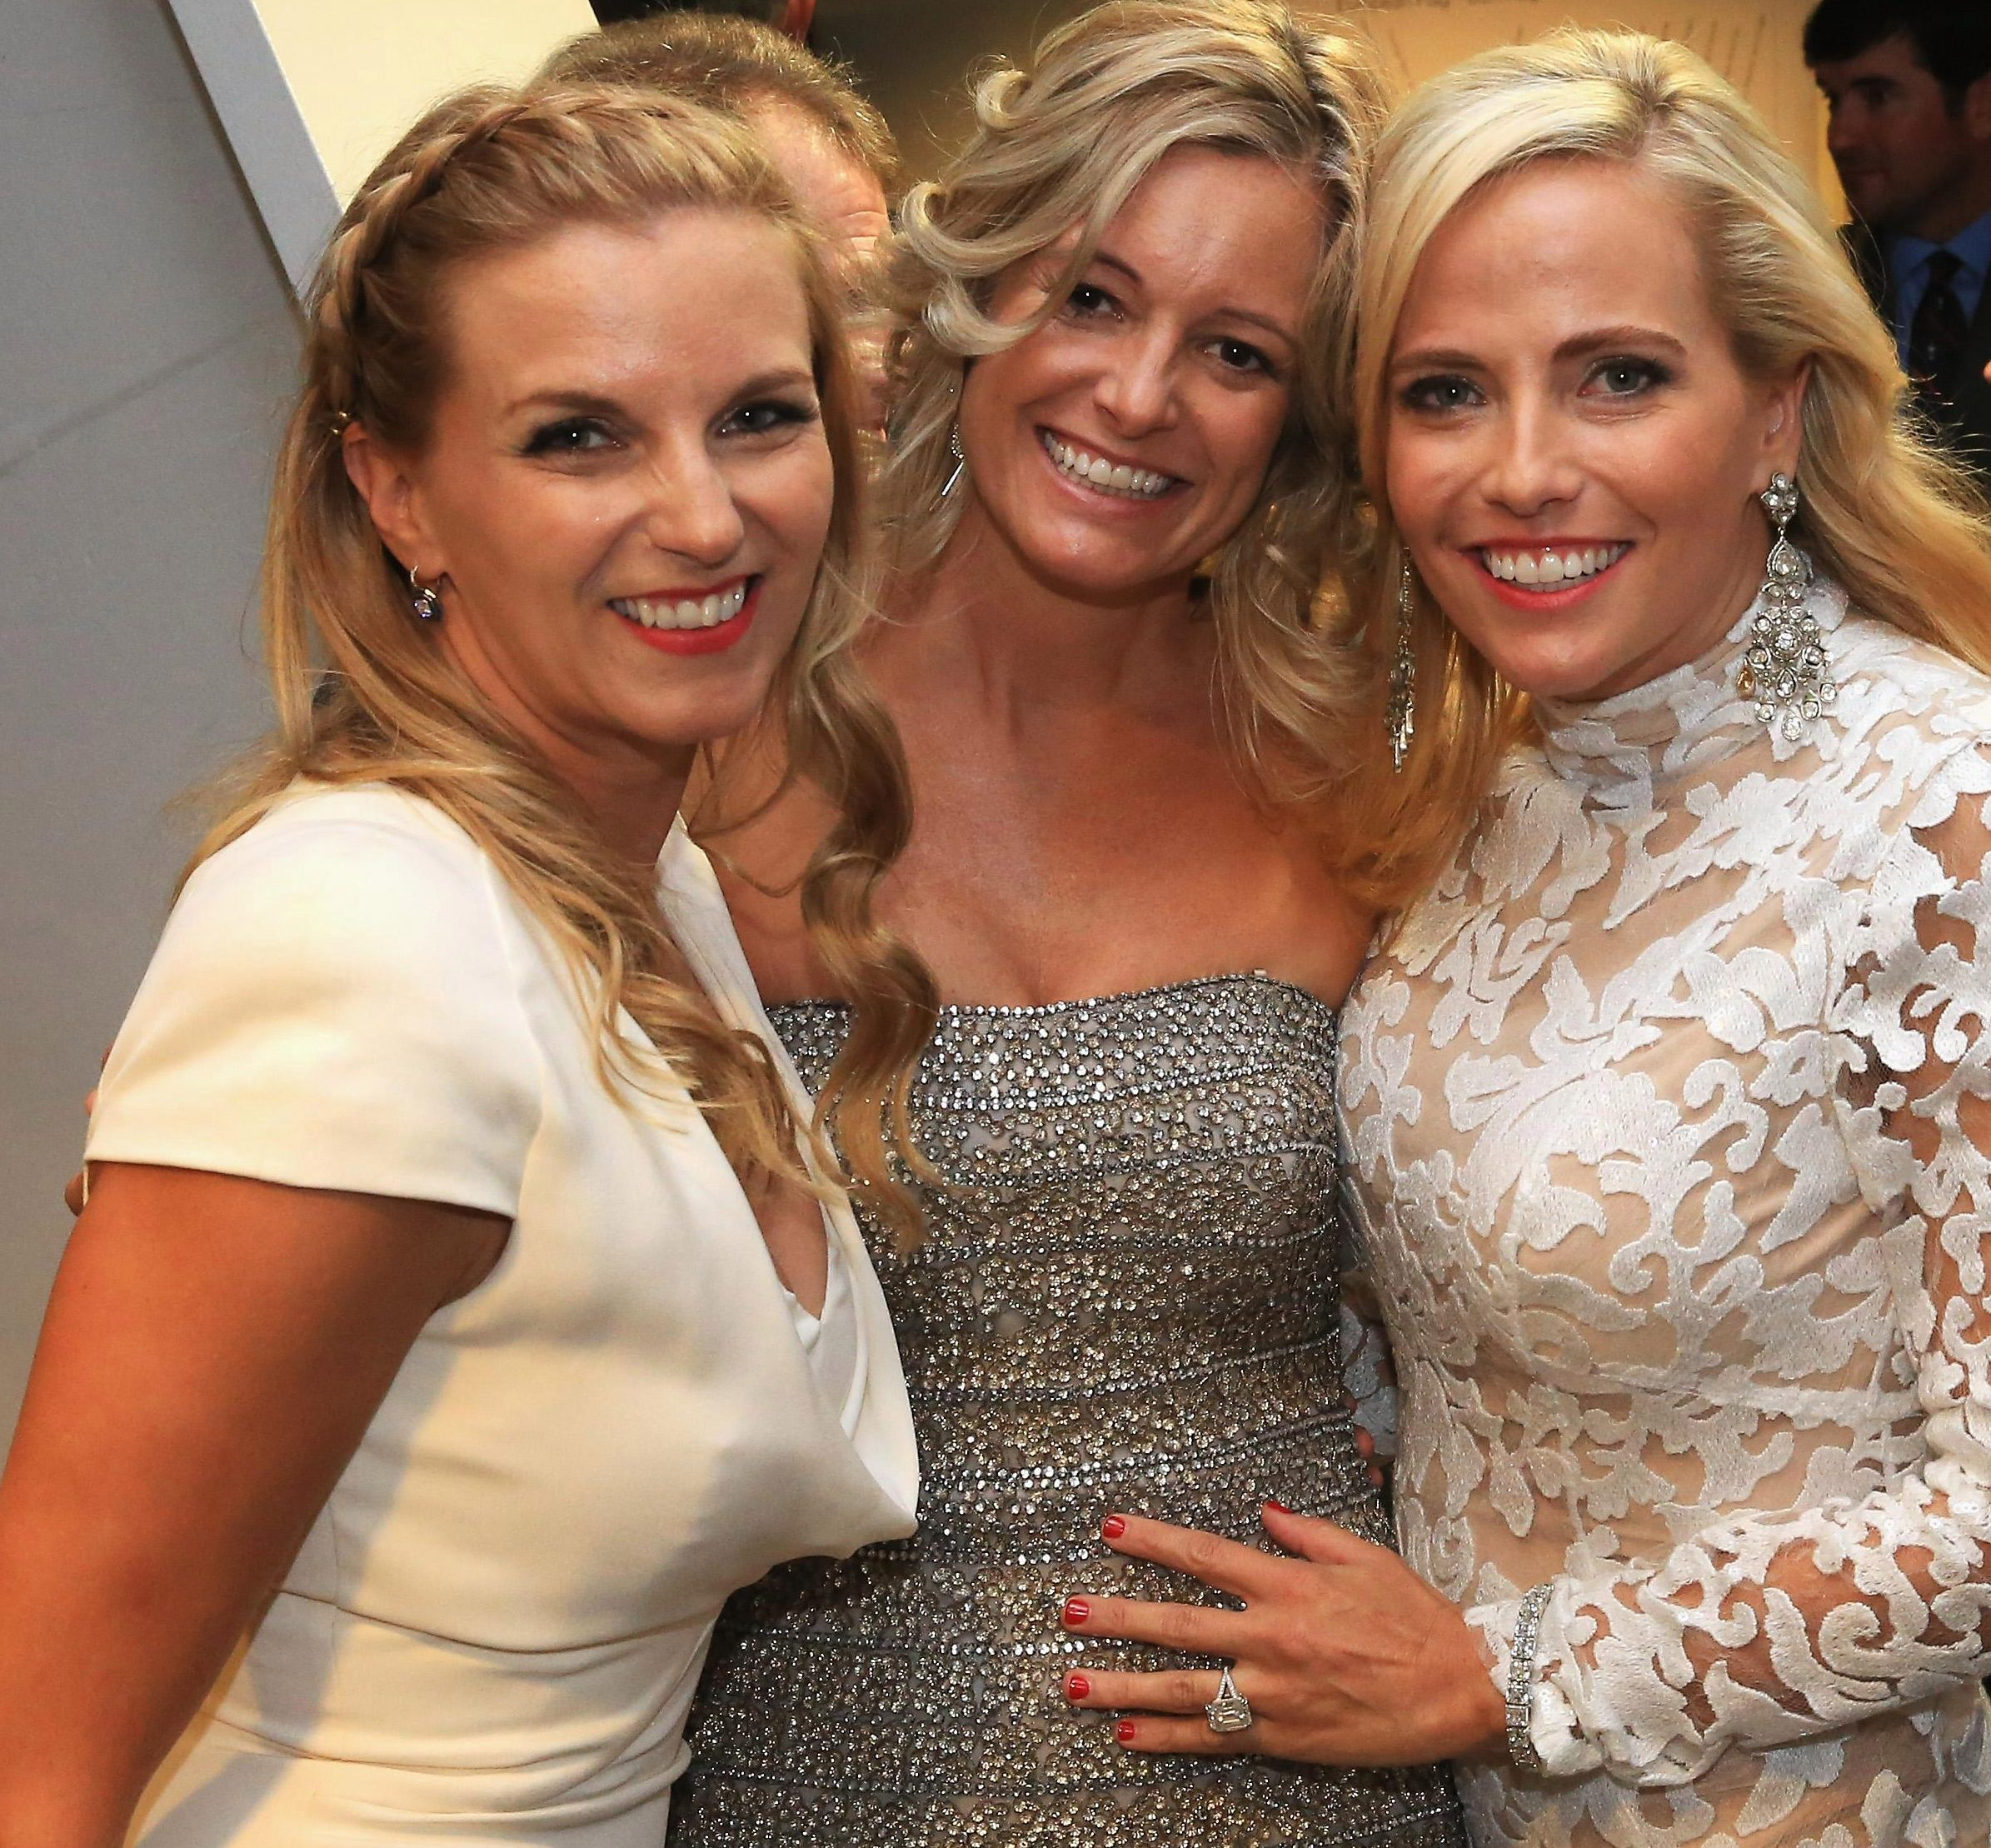 Kate Rose, Tabitha Furyk and Amy Mickelson pose during the 2014 Ryder Cup Gala Concert